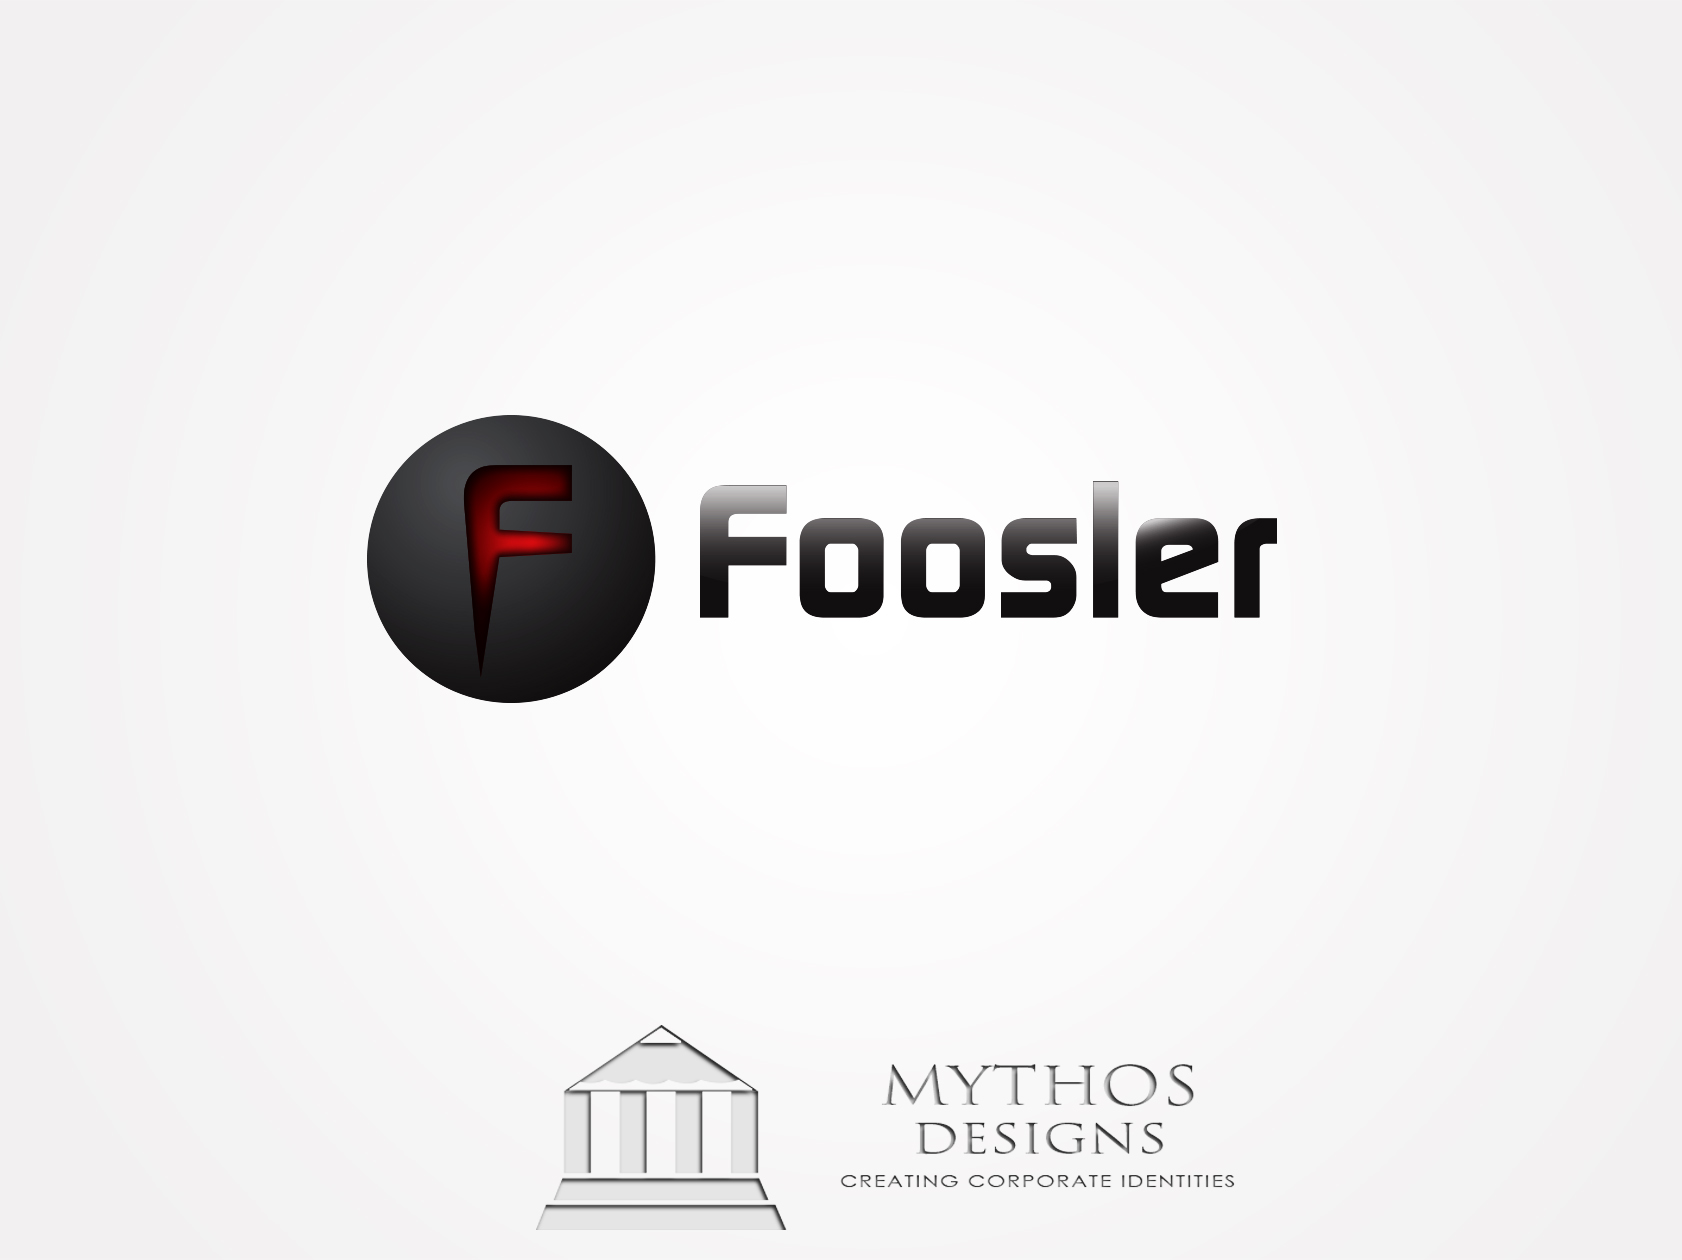 Logo Design by Mythos Designs - Entry No. 88 in the Logo Design Contest Foosler Logo Design.